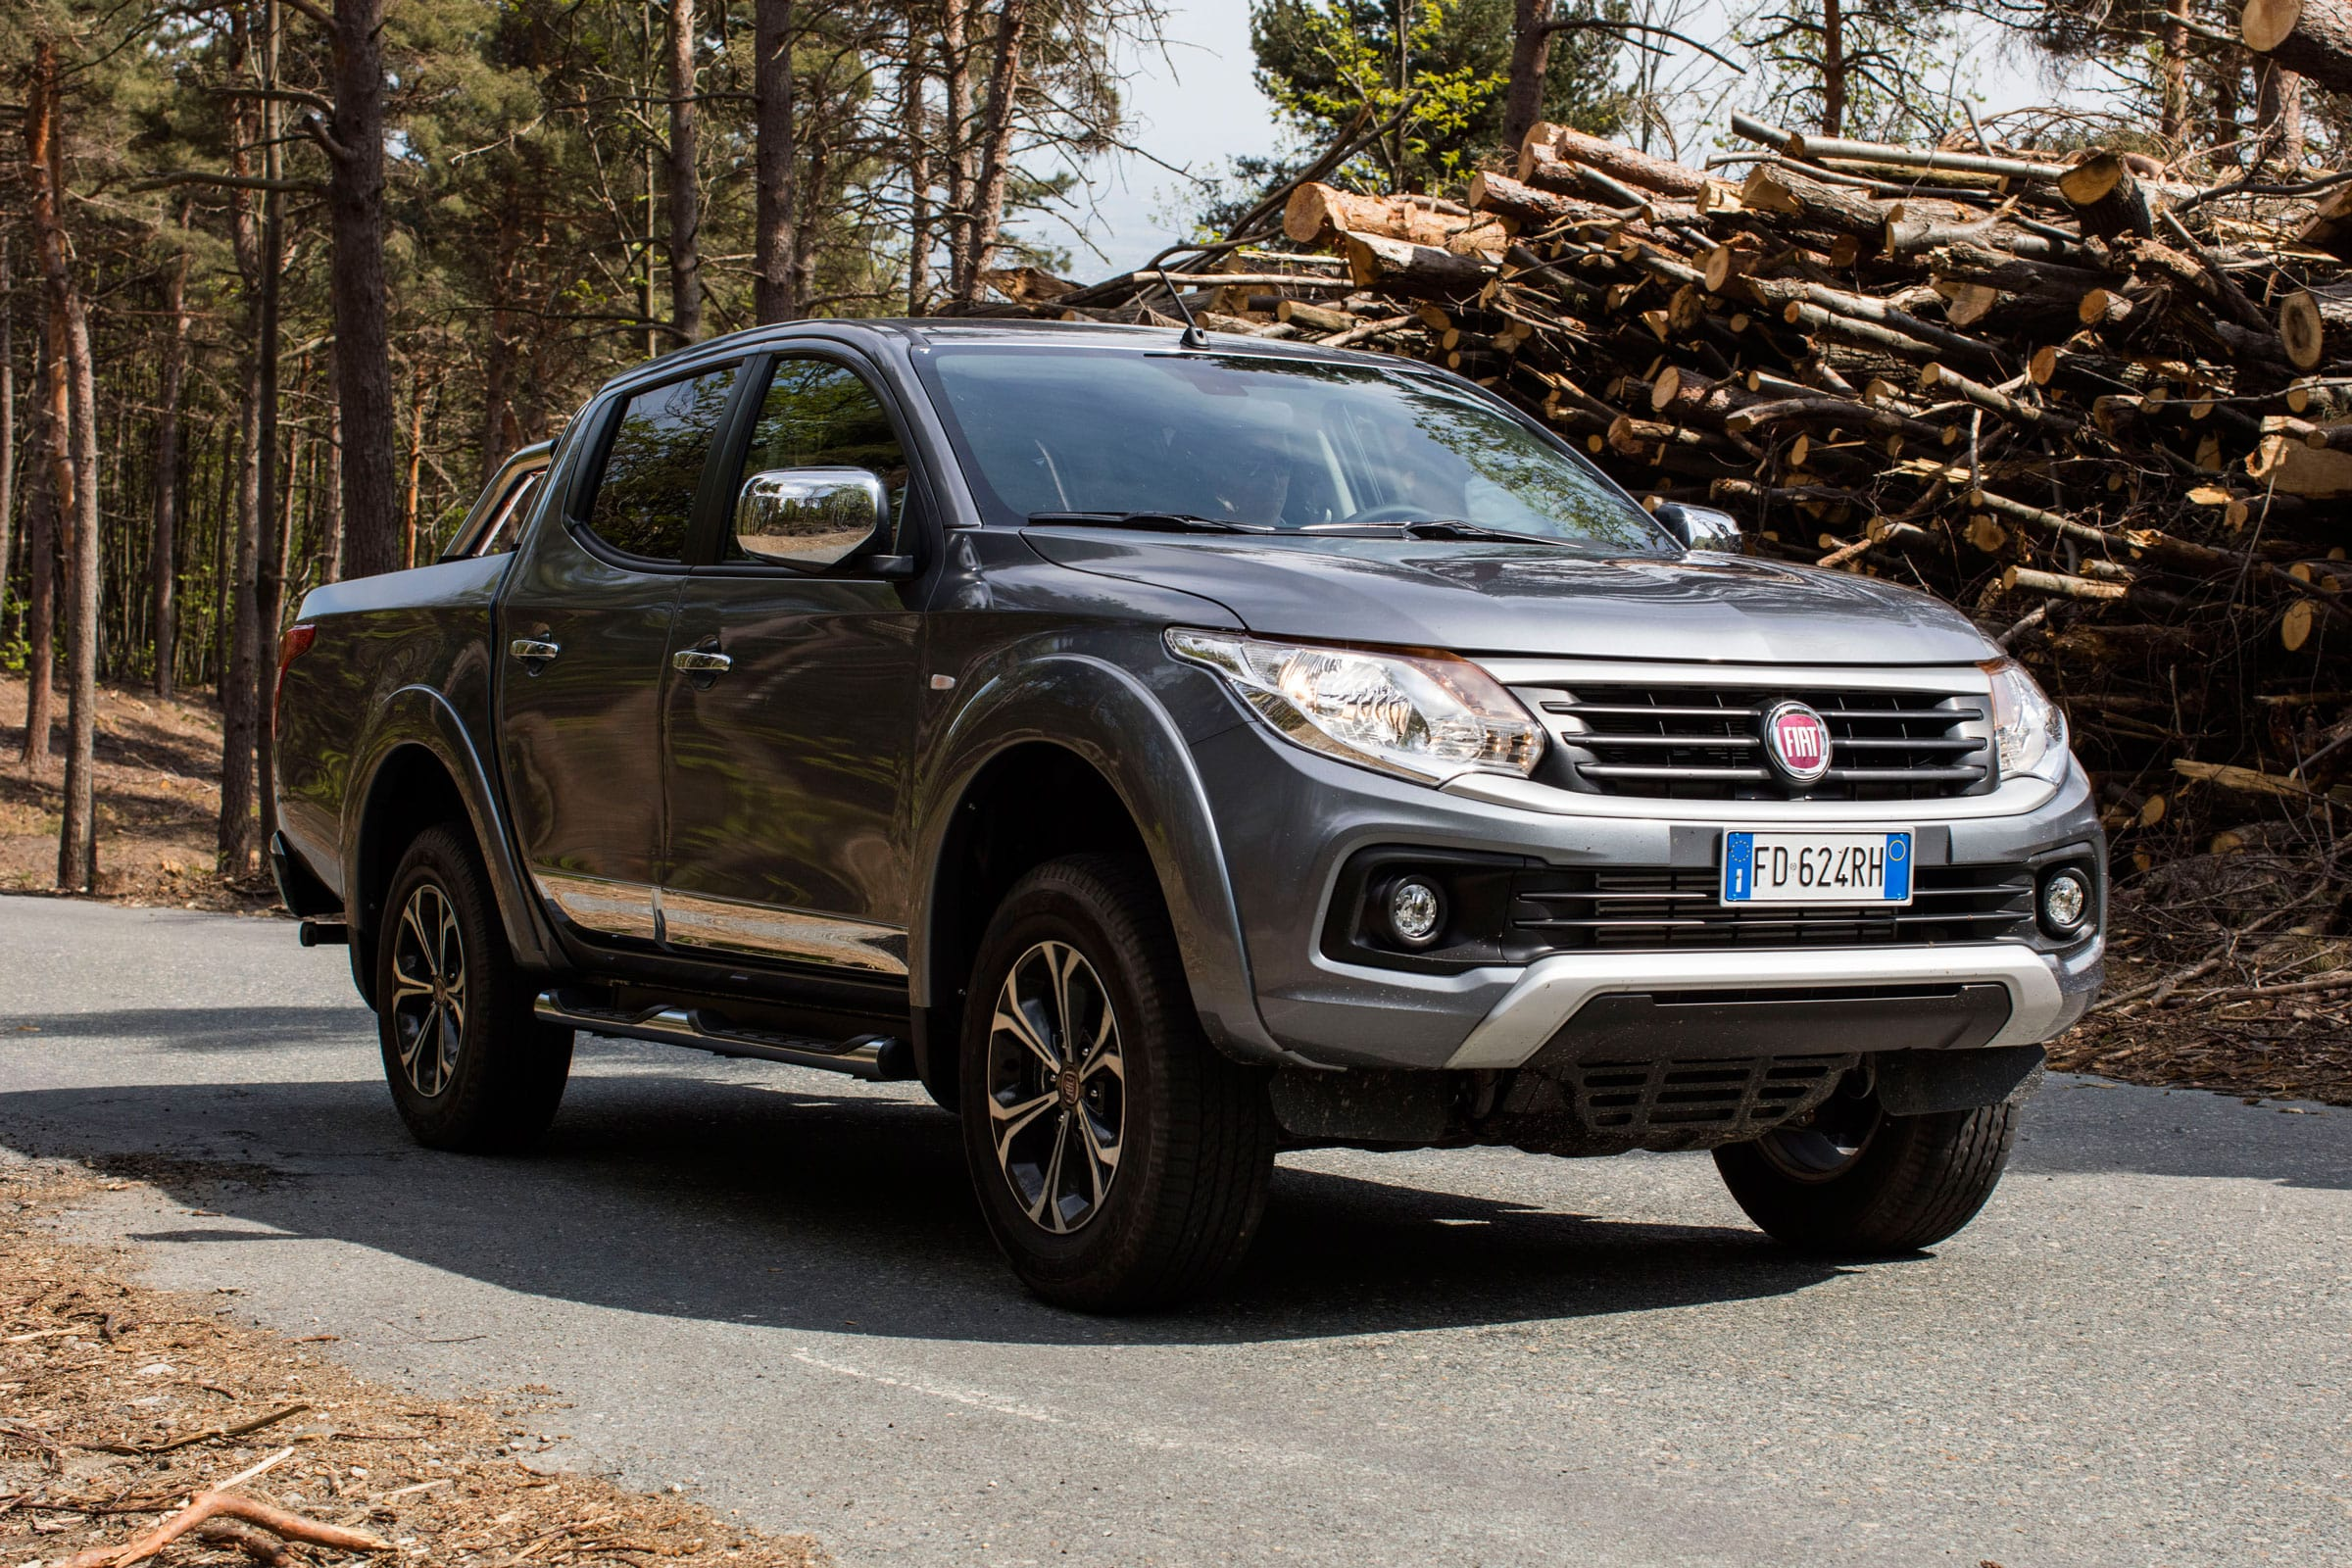 Fiat Fullback Widescreen for desktop